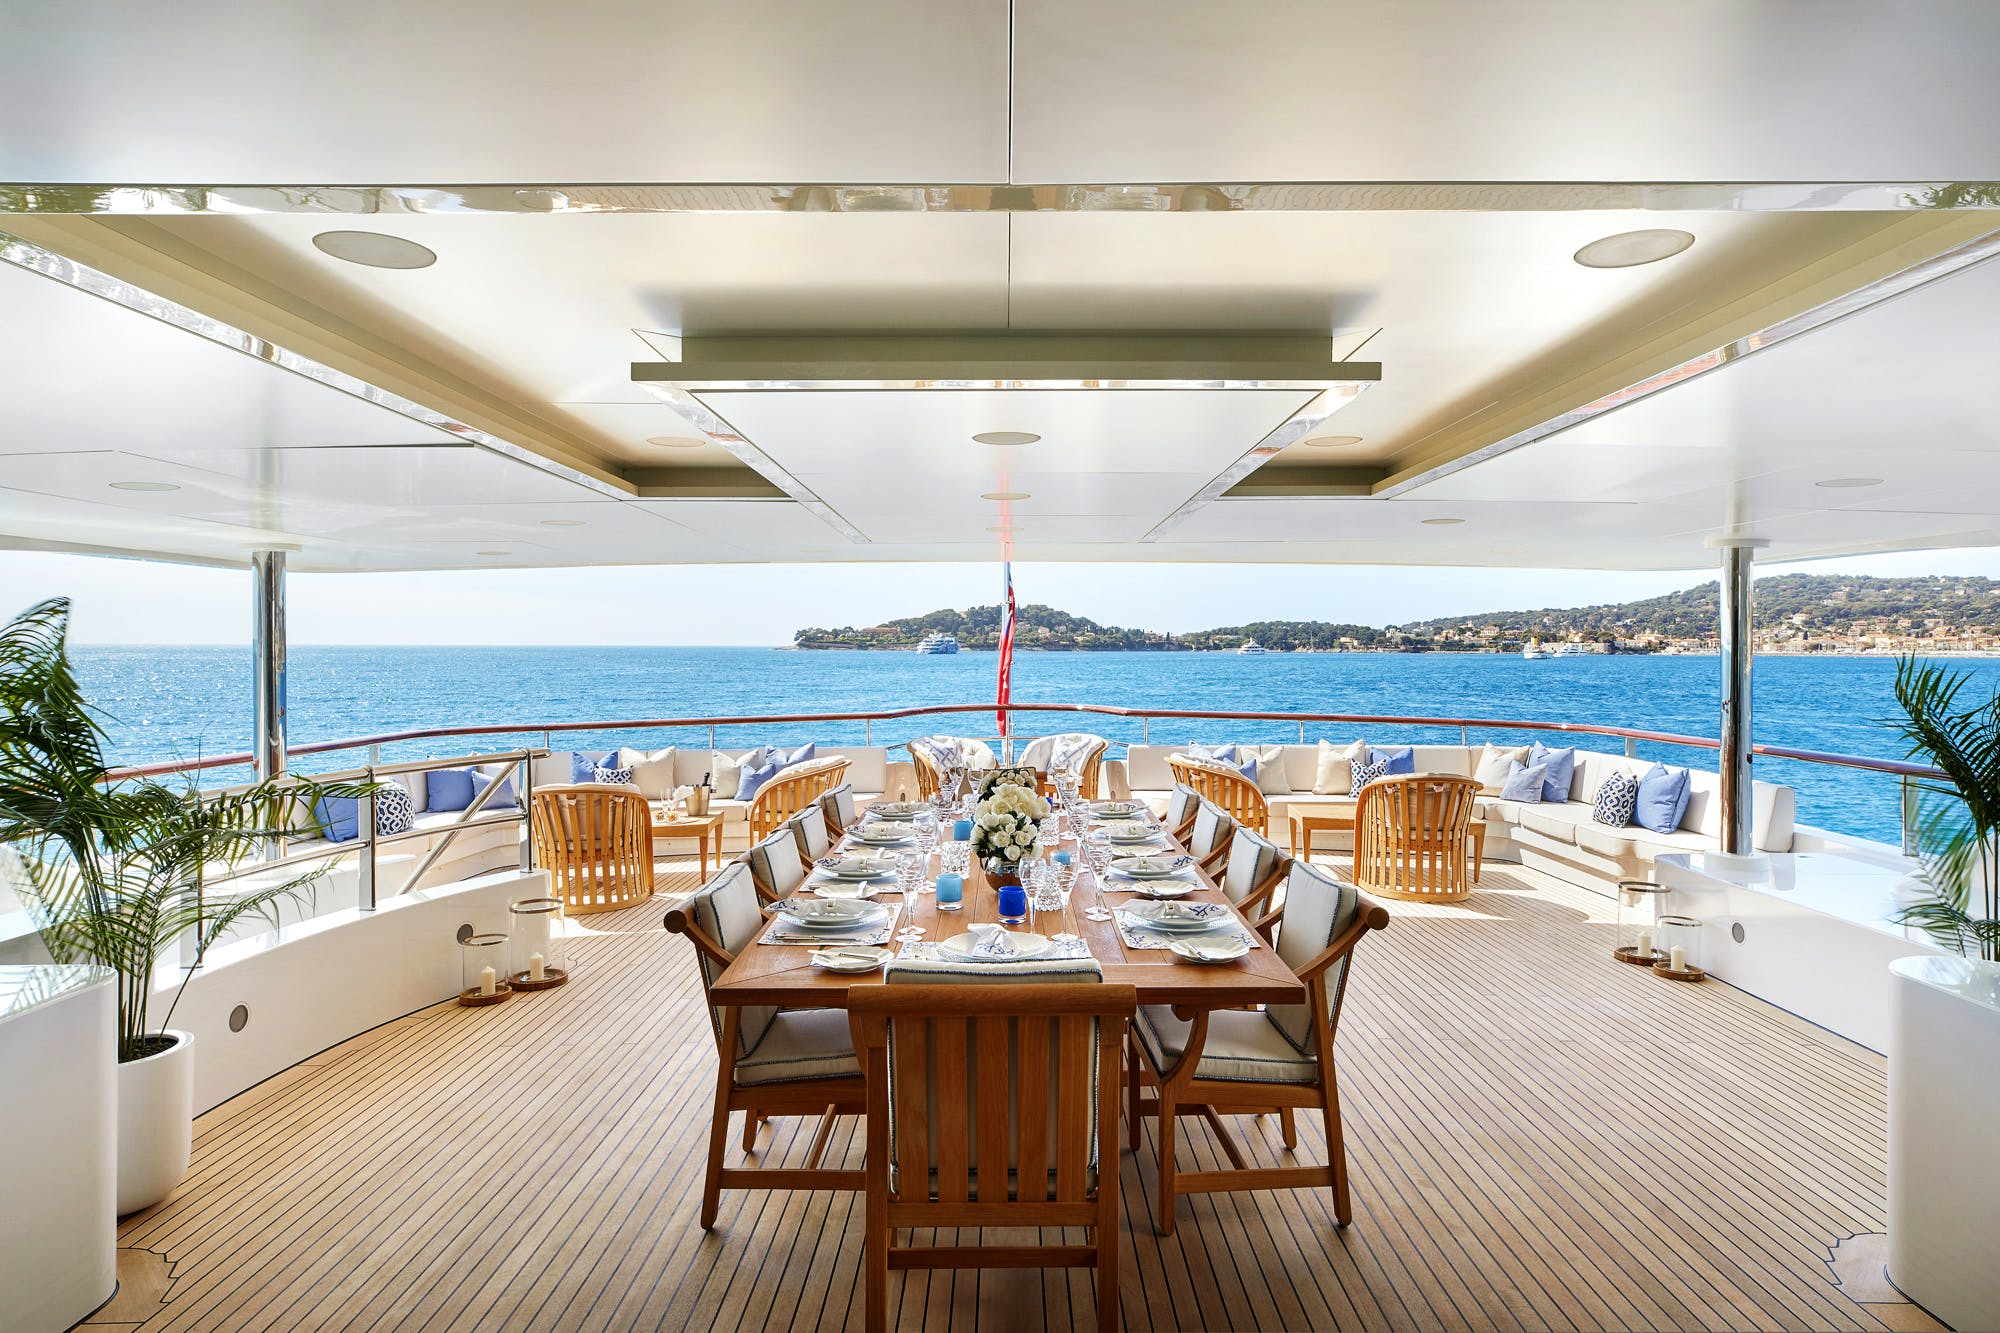 Seasonal Rates for ANDREAS L Private Luxury Yacht For Charter